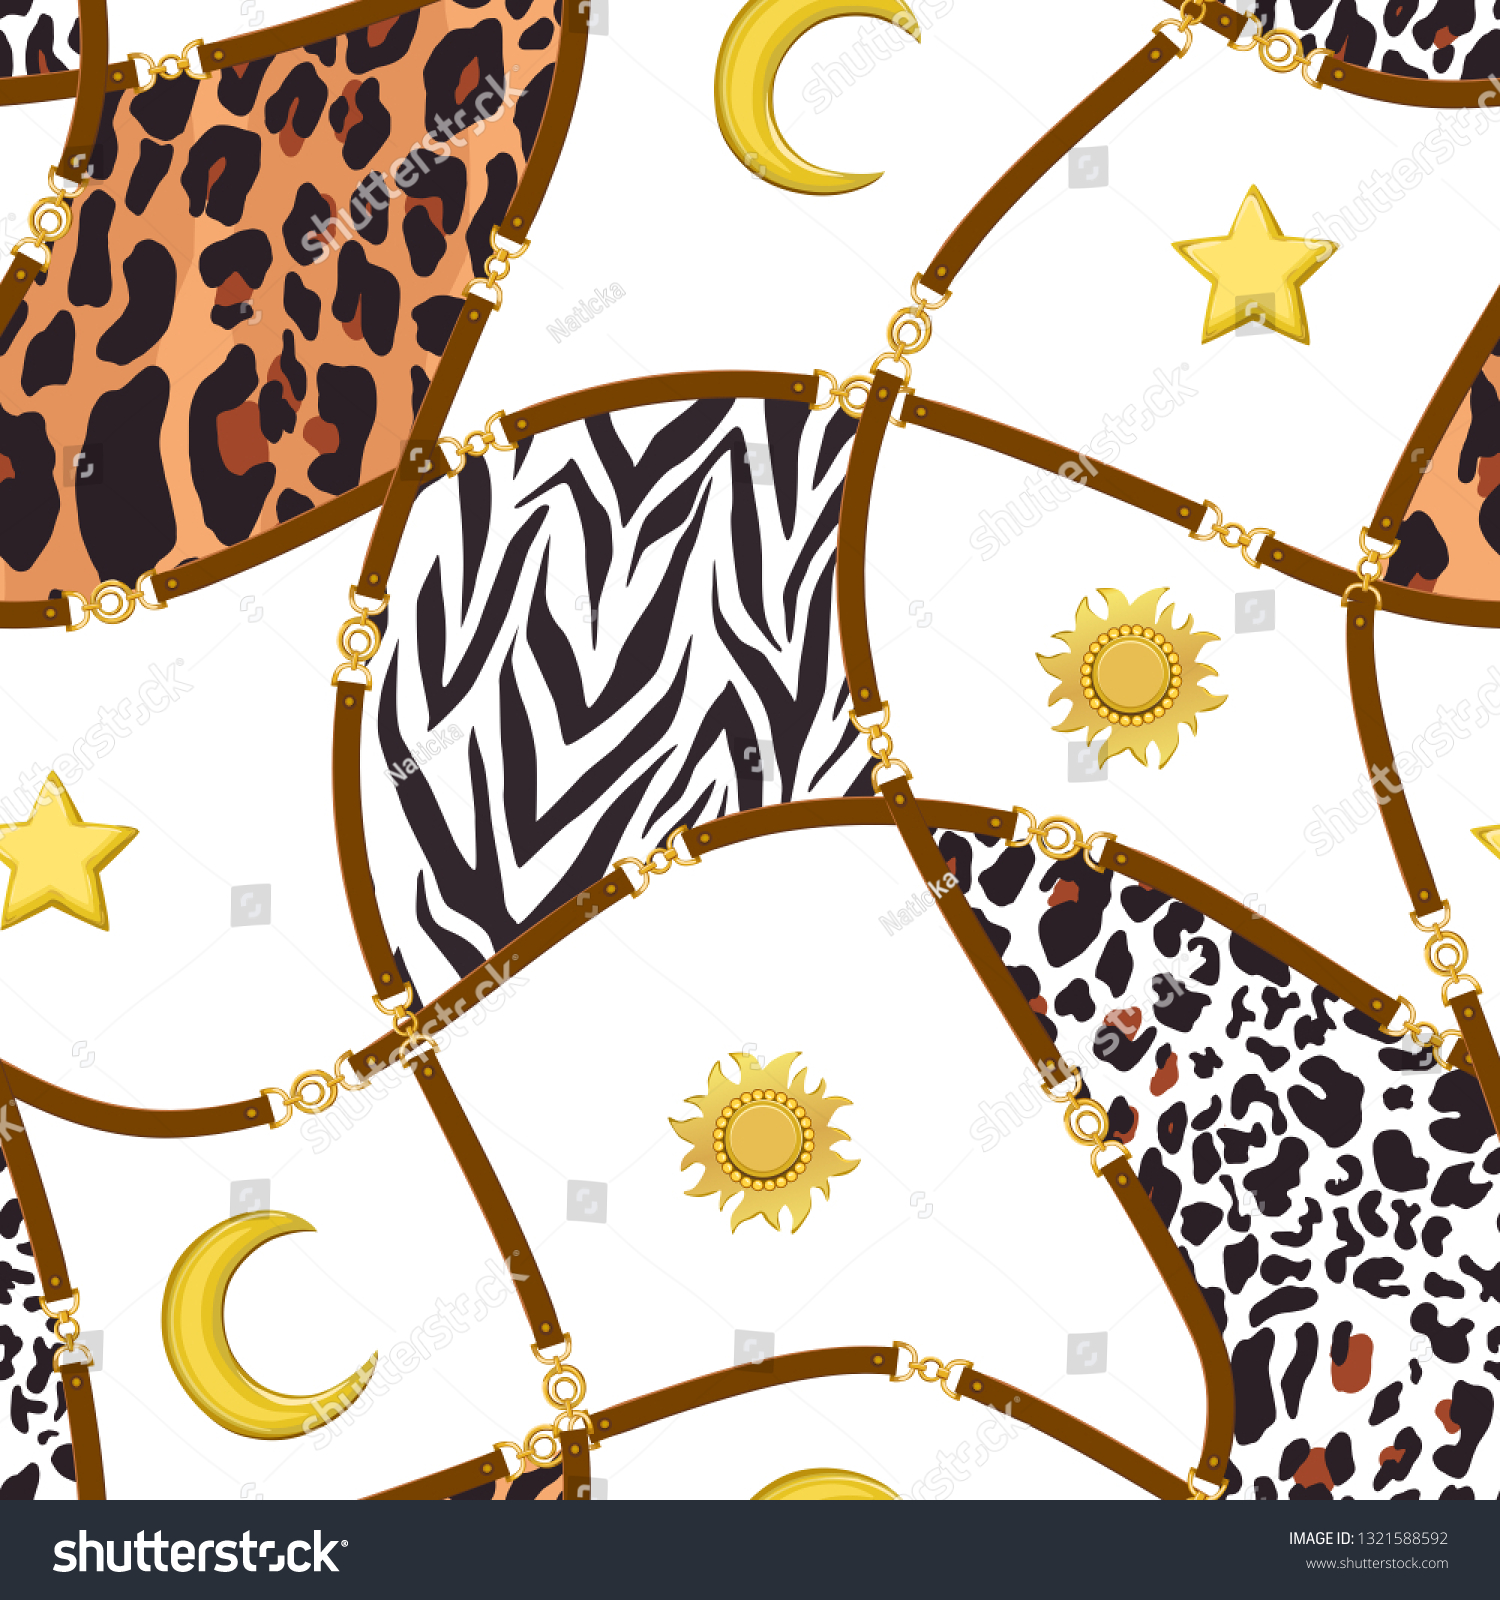 ad9cd474f7 Chain Seamless Pattern Belt Zebra Leopard Stock Vector (Royalty Free ...